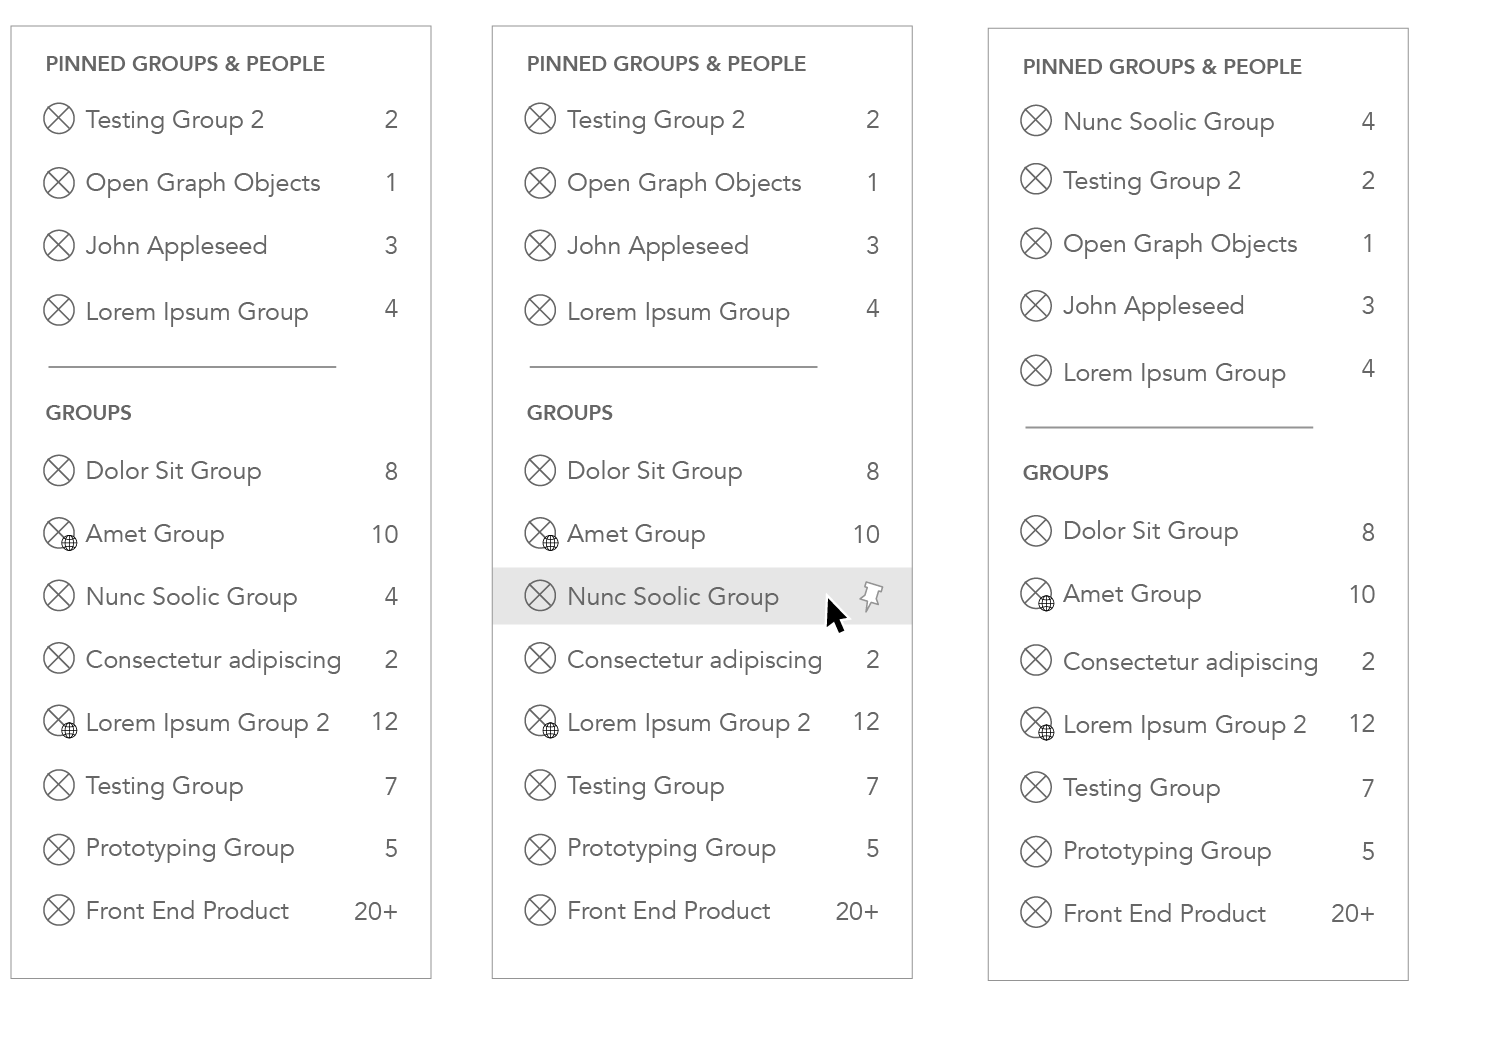 group-reordering-04 copy.png